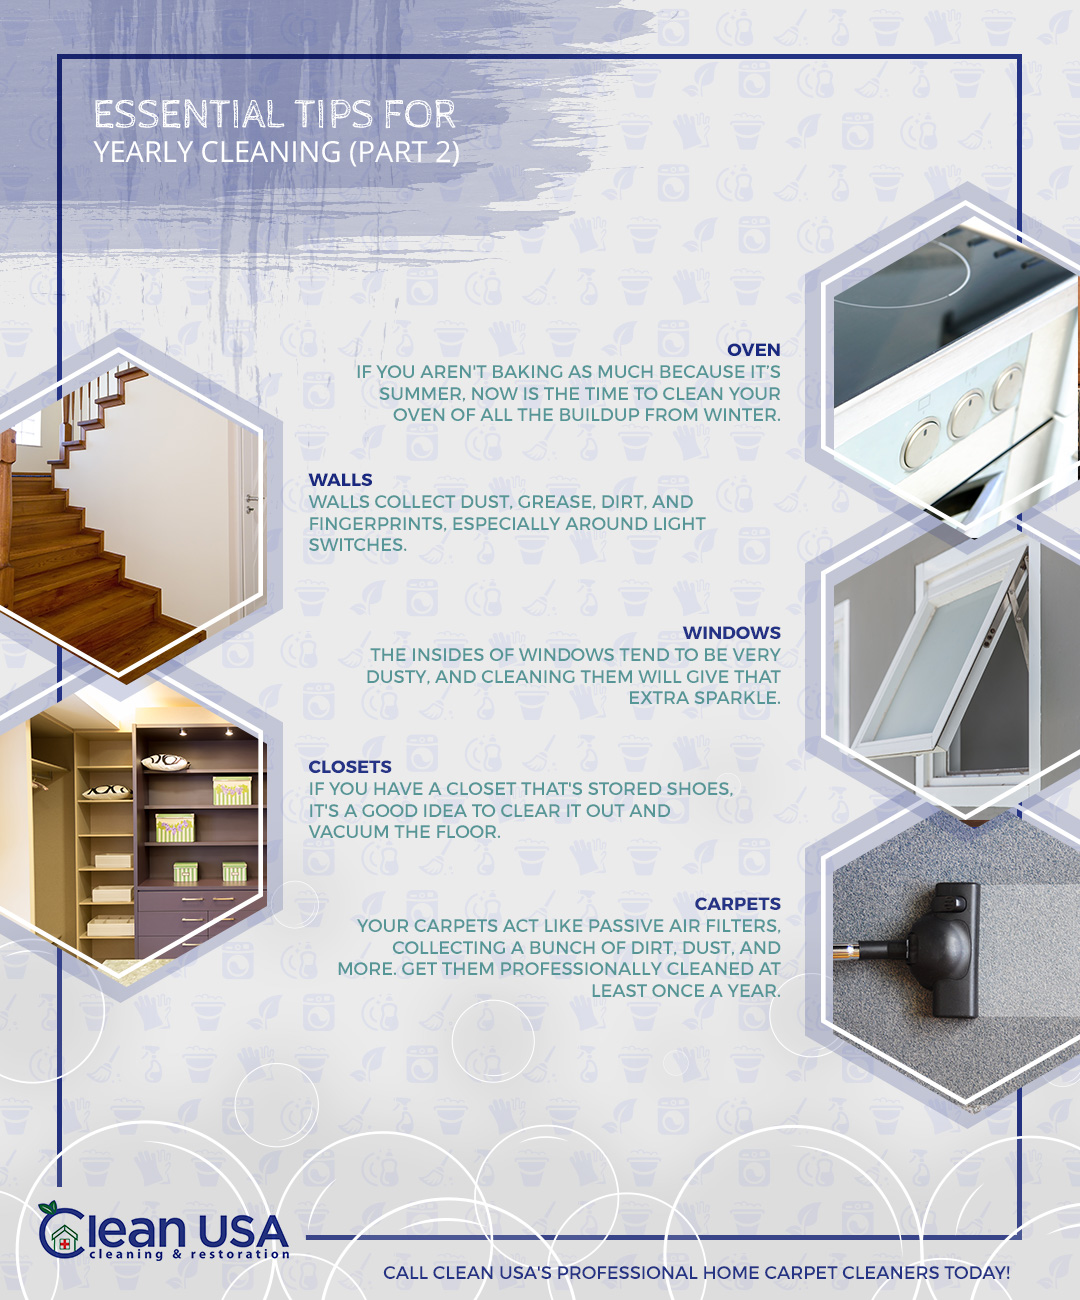 yearly-cleaning-infographic-part-2-5b3a7